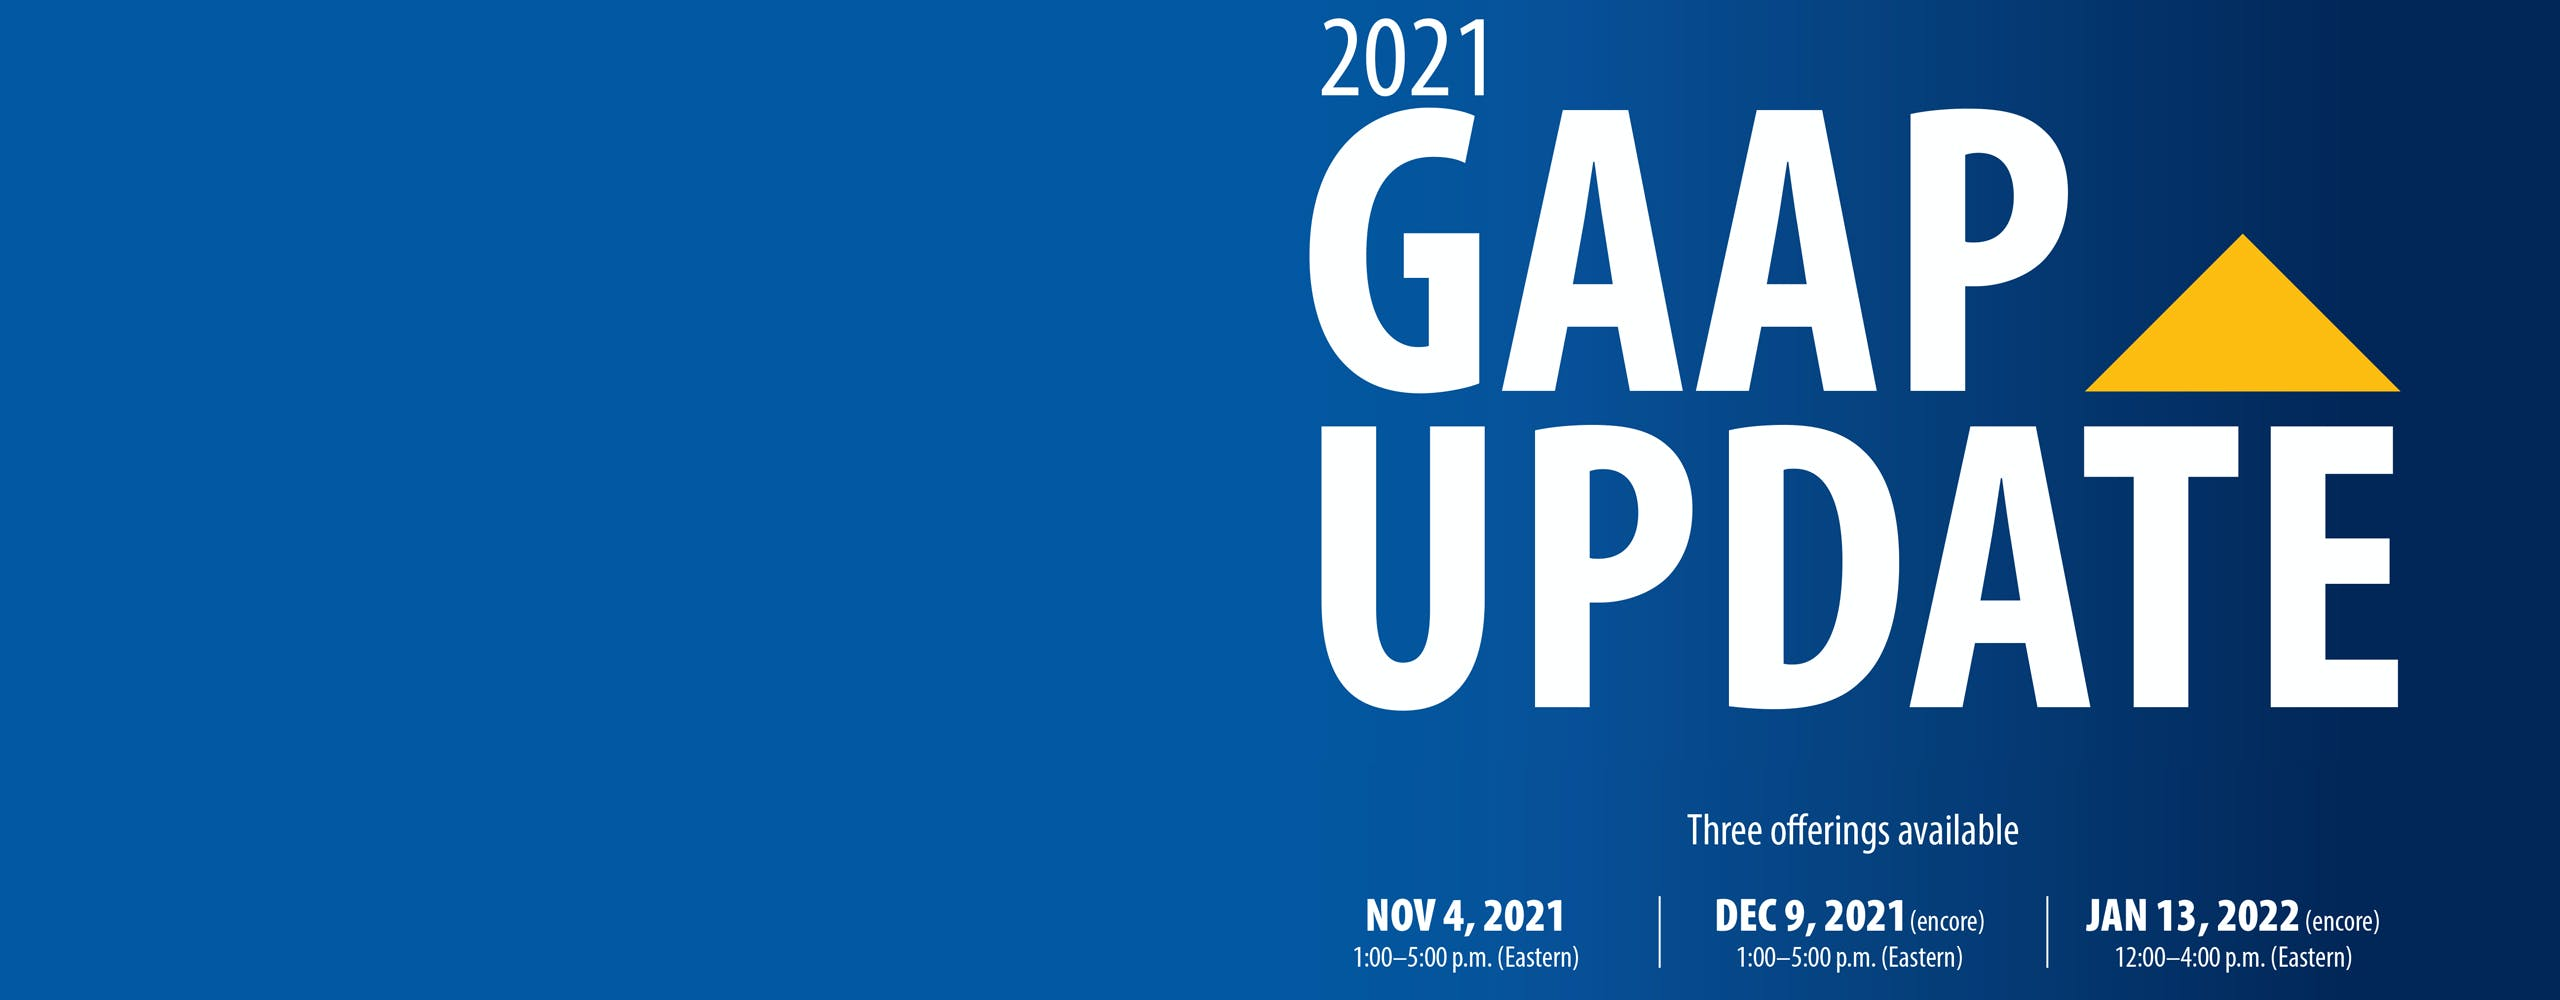 Image of GAAP Update Logo and Dates offered.